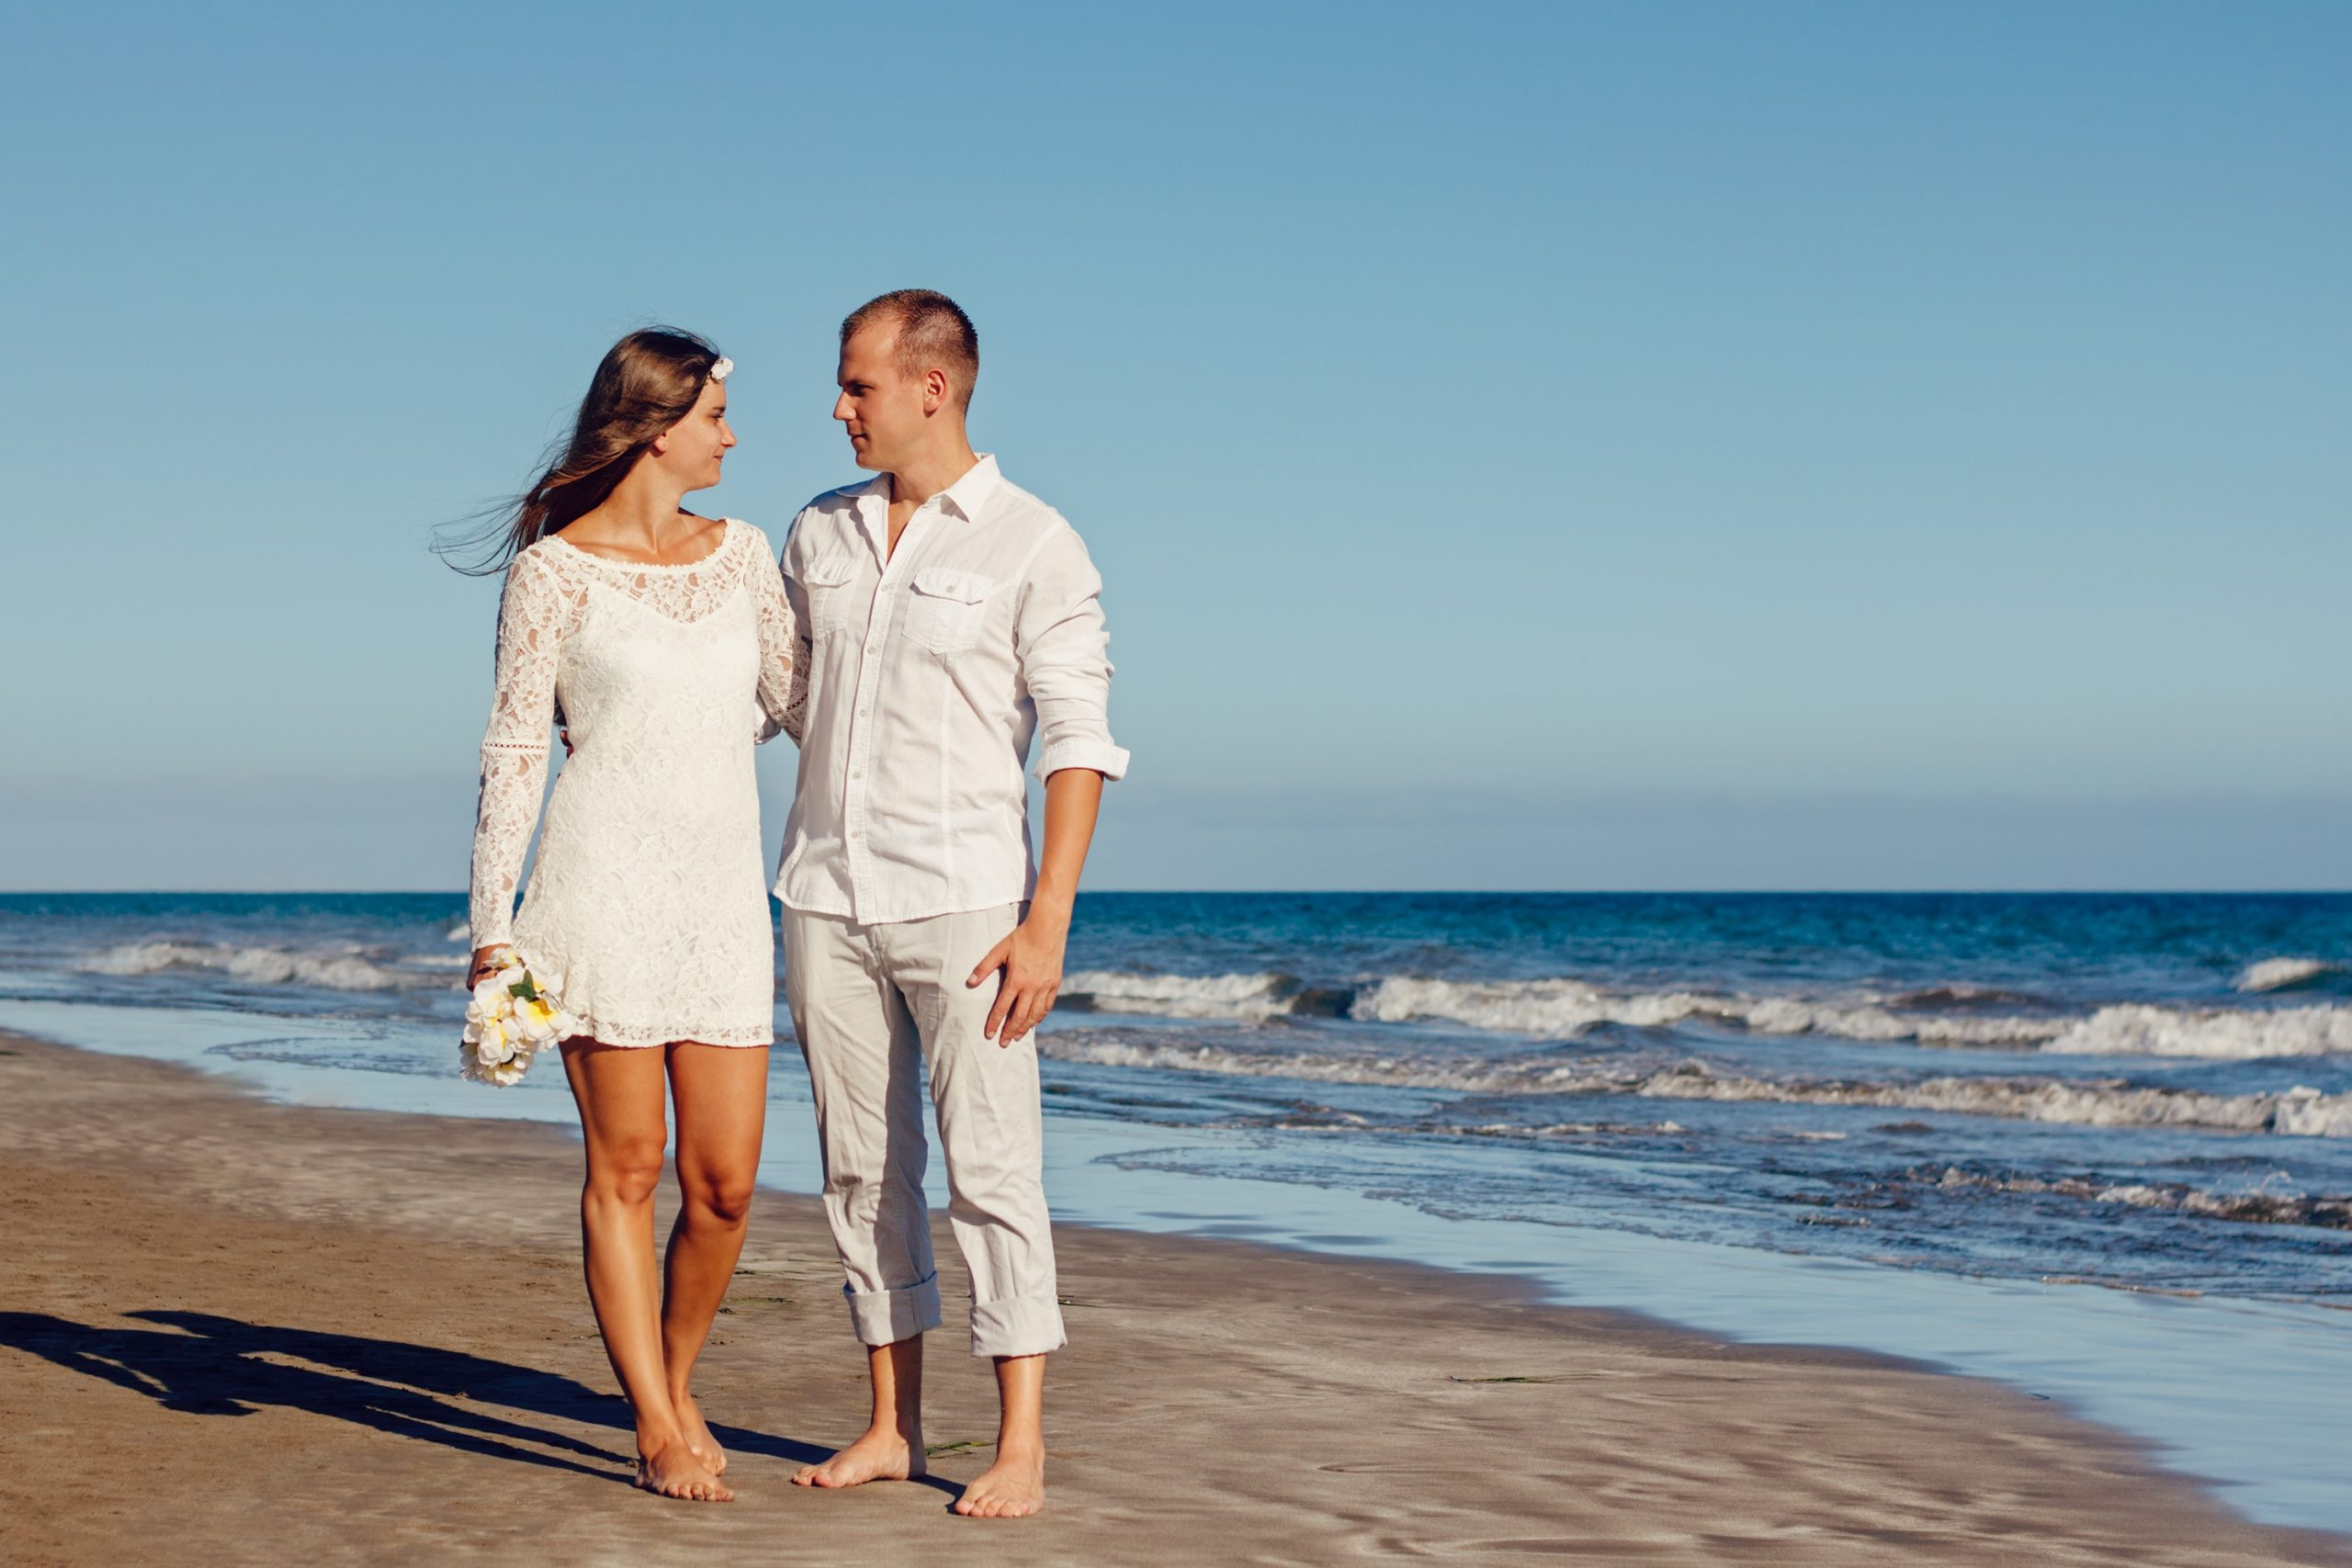 wedding, beach, young couple